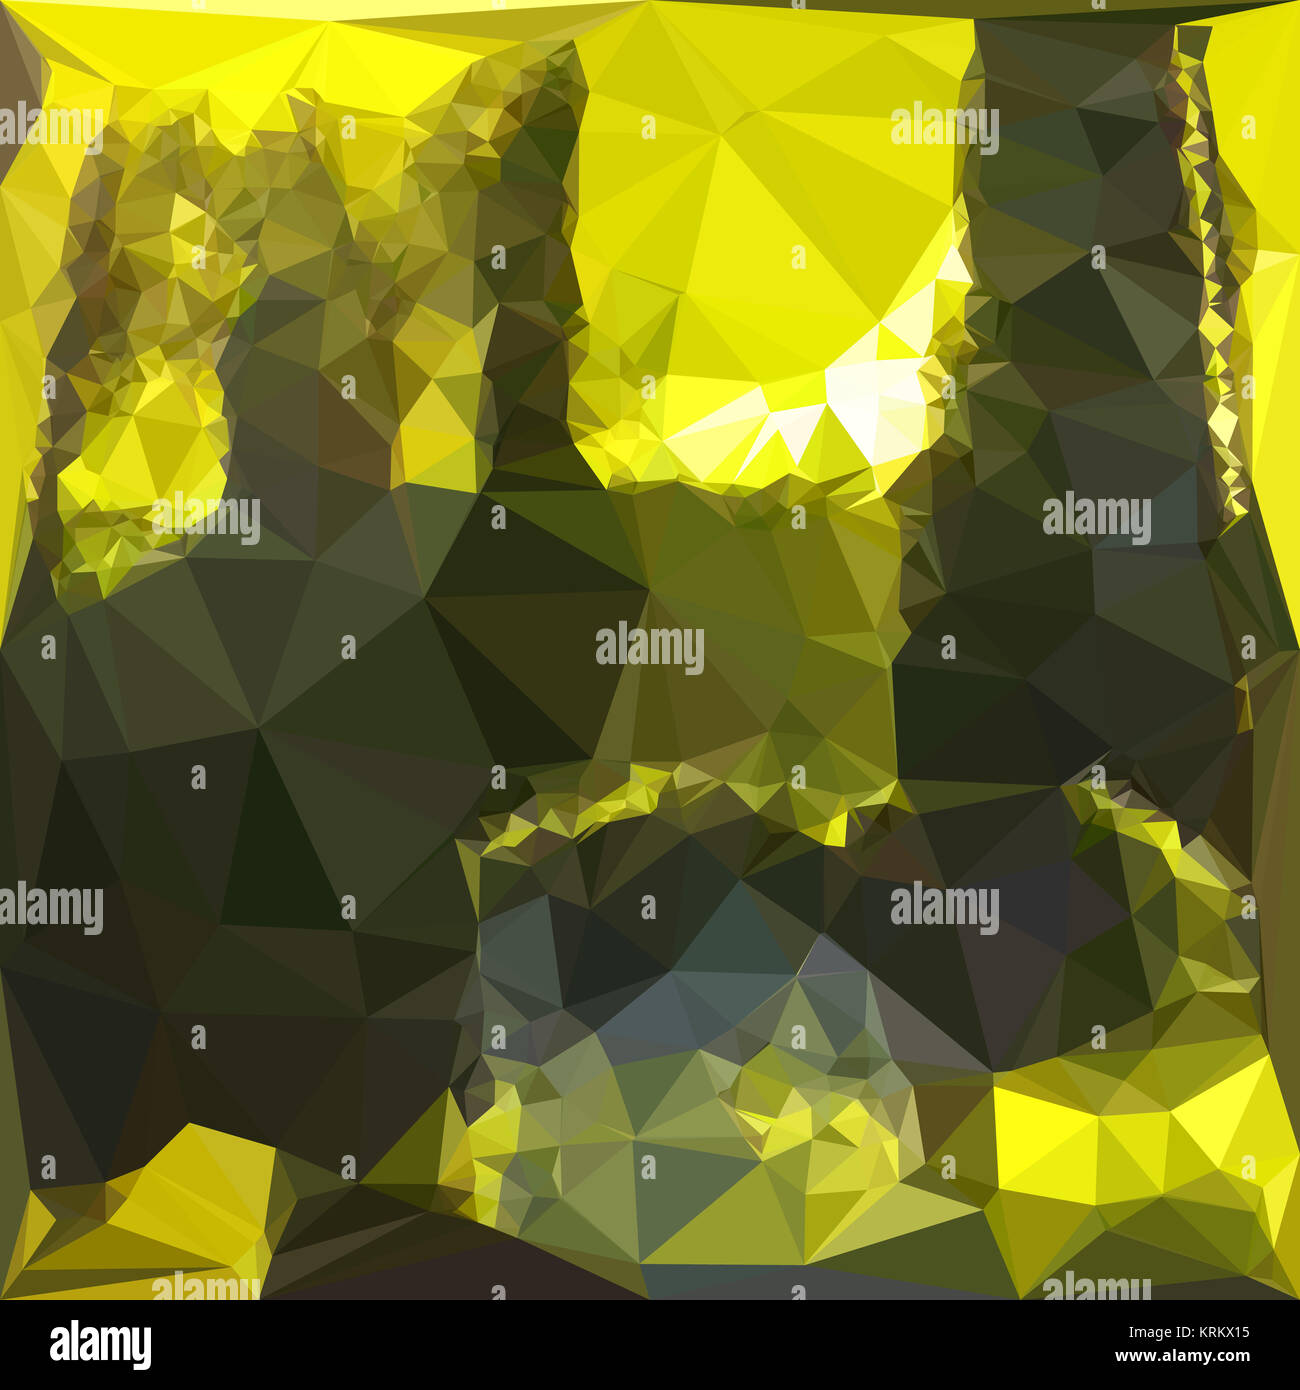 Polygon Gmbh electric lime yellow abstract low polygon background stock photo